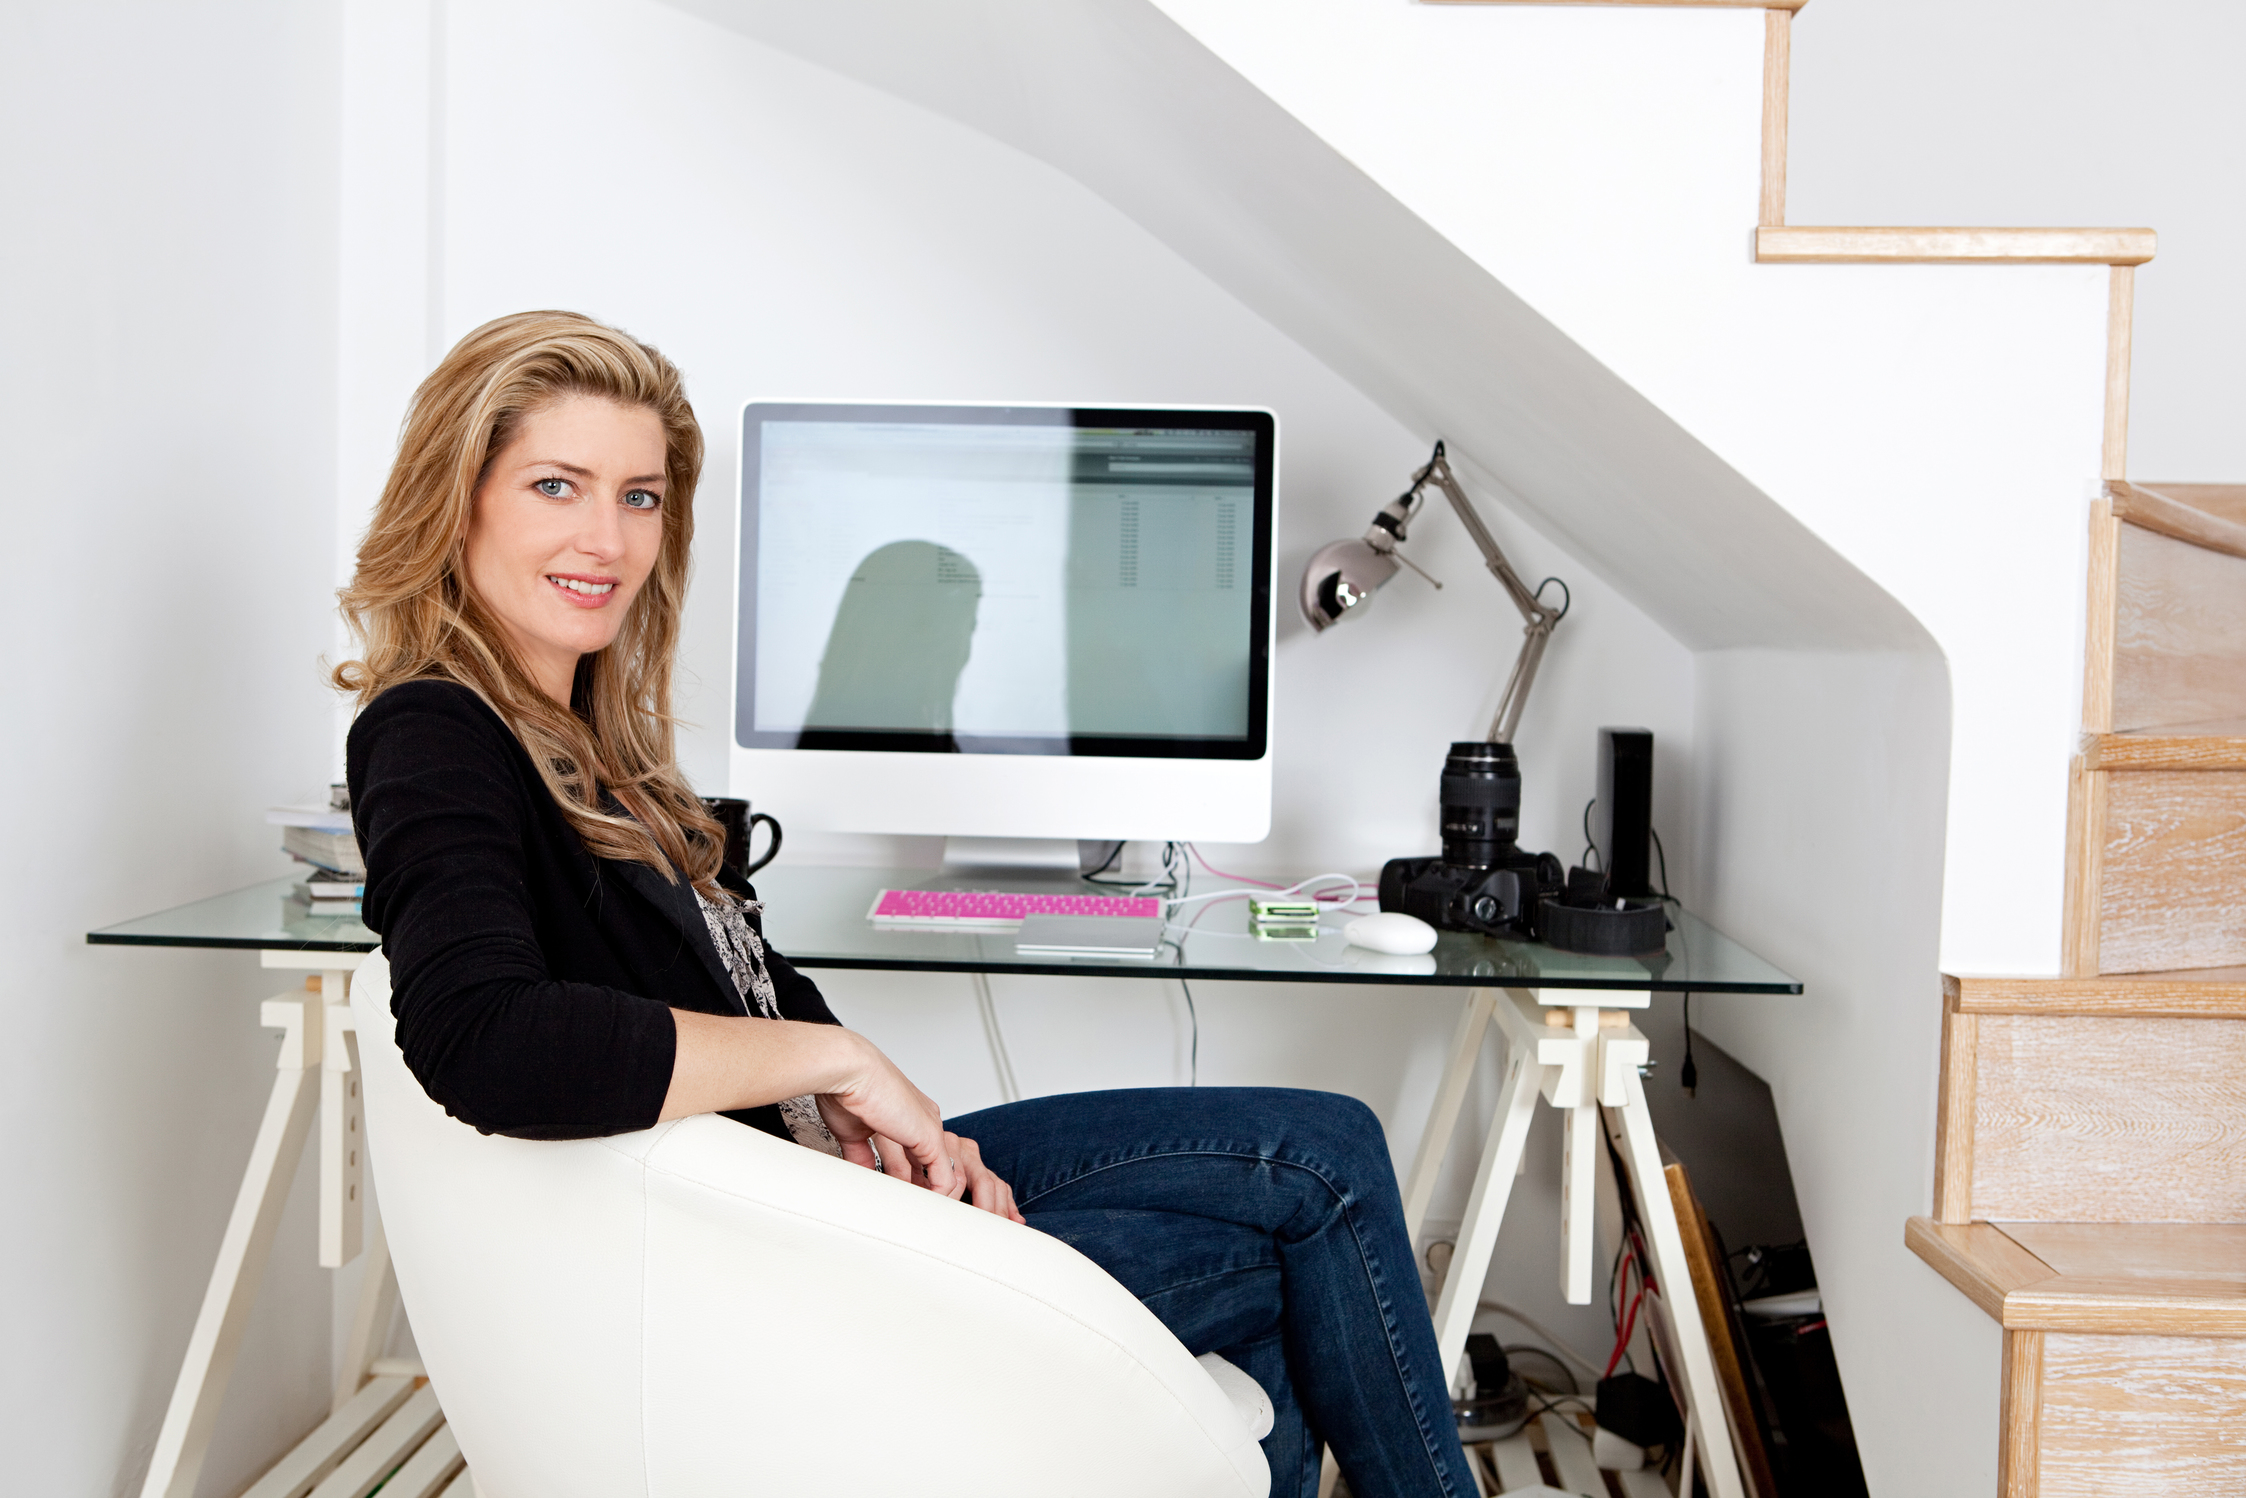 5 Ways to Get Started on Your Home-Based Business